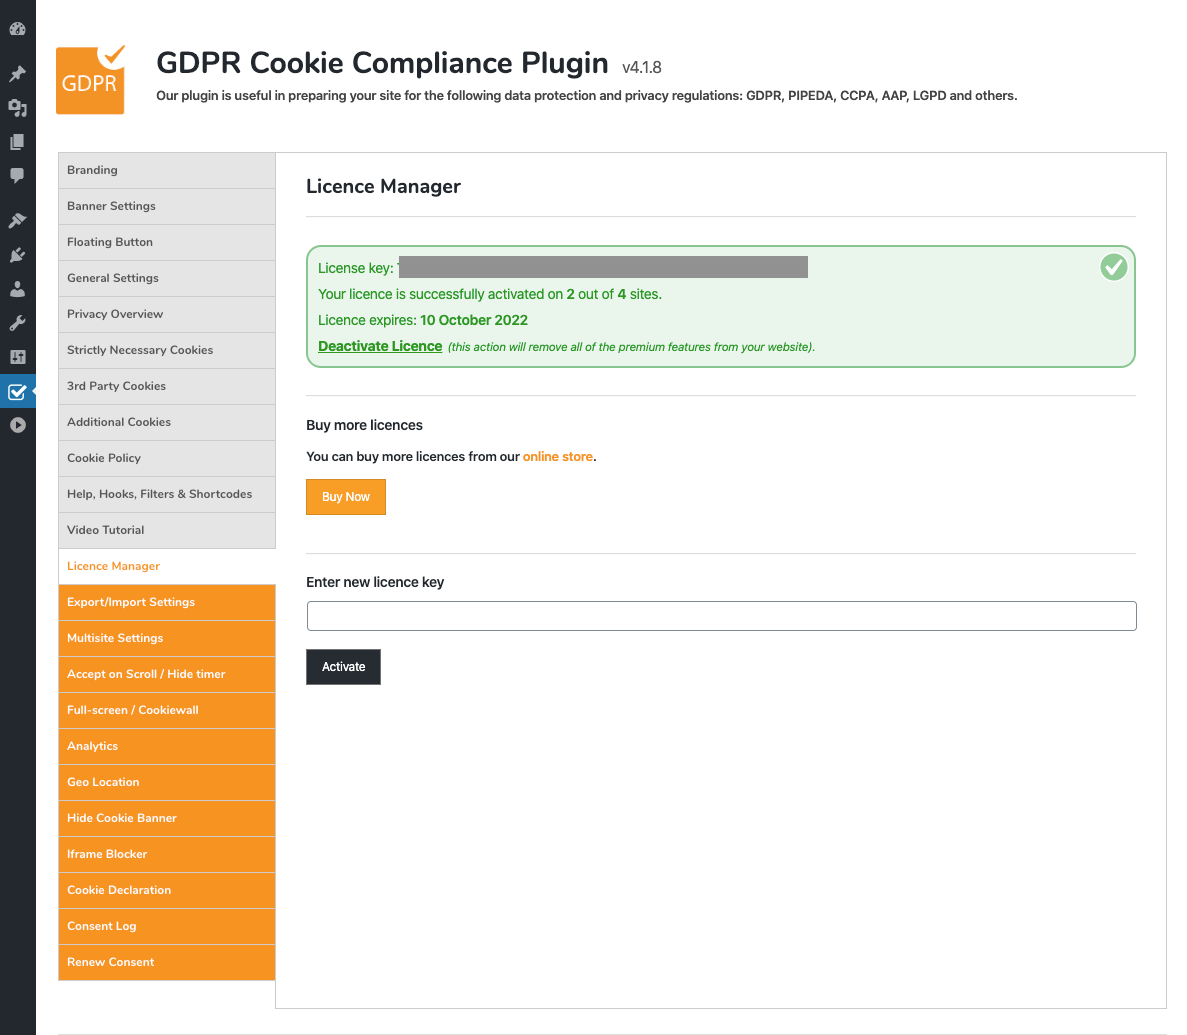 GDPR Cookie Compliance - Admin - Licence Manager